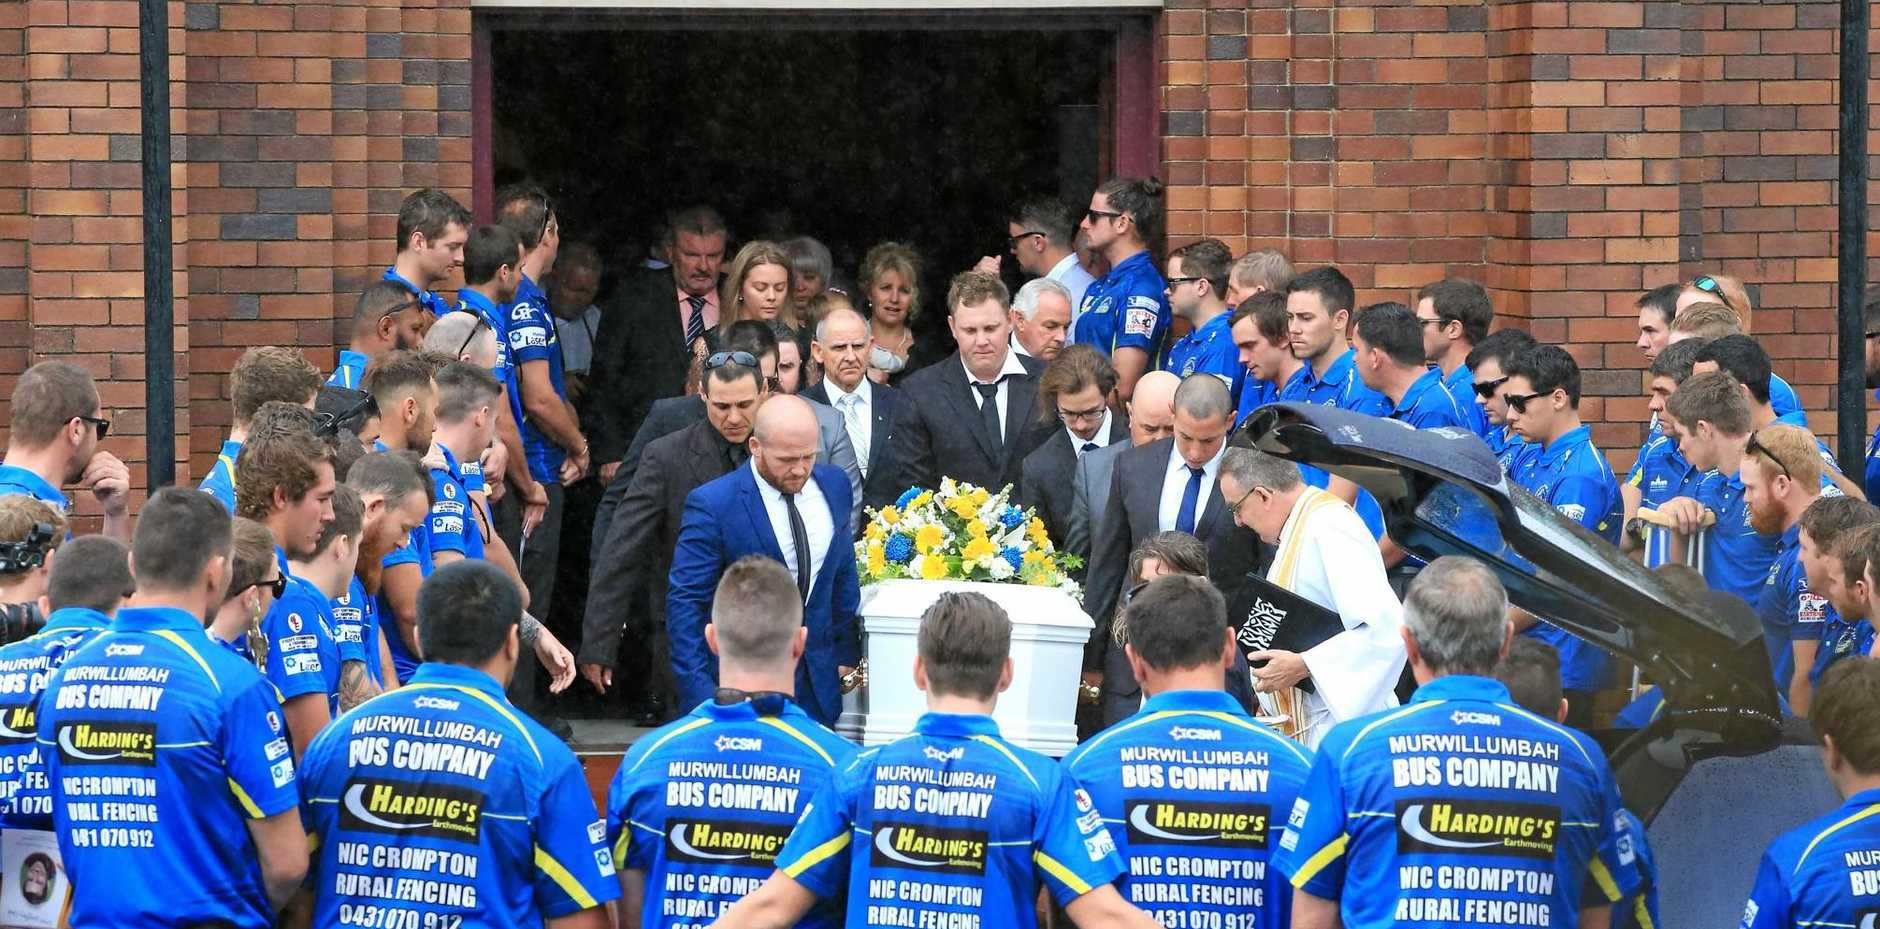 Mustangs players form a guard of honour as the coffin of Grant Cook is carried out of the church.